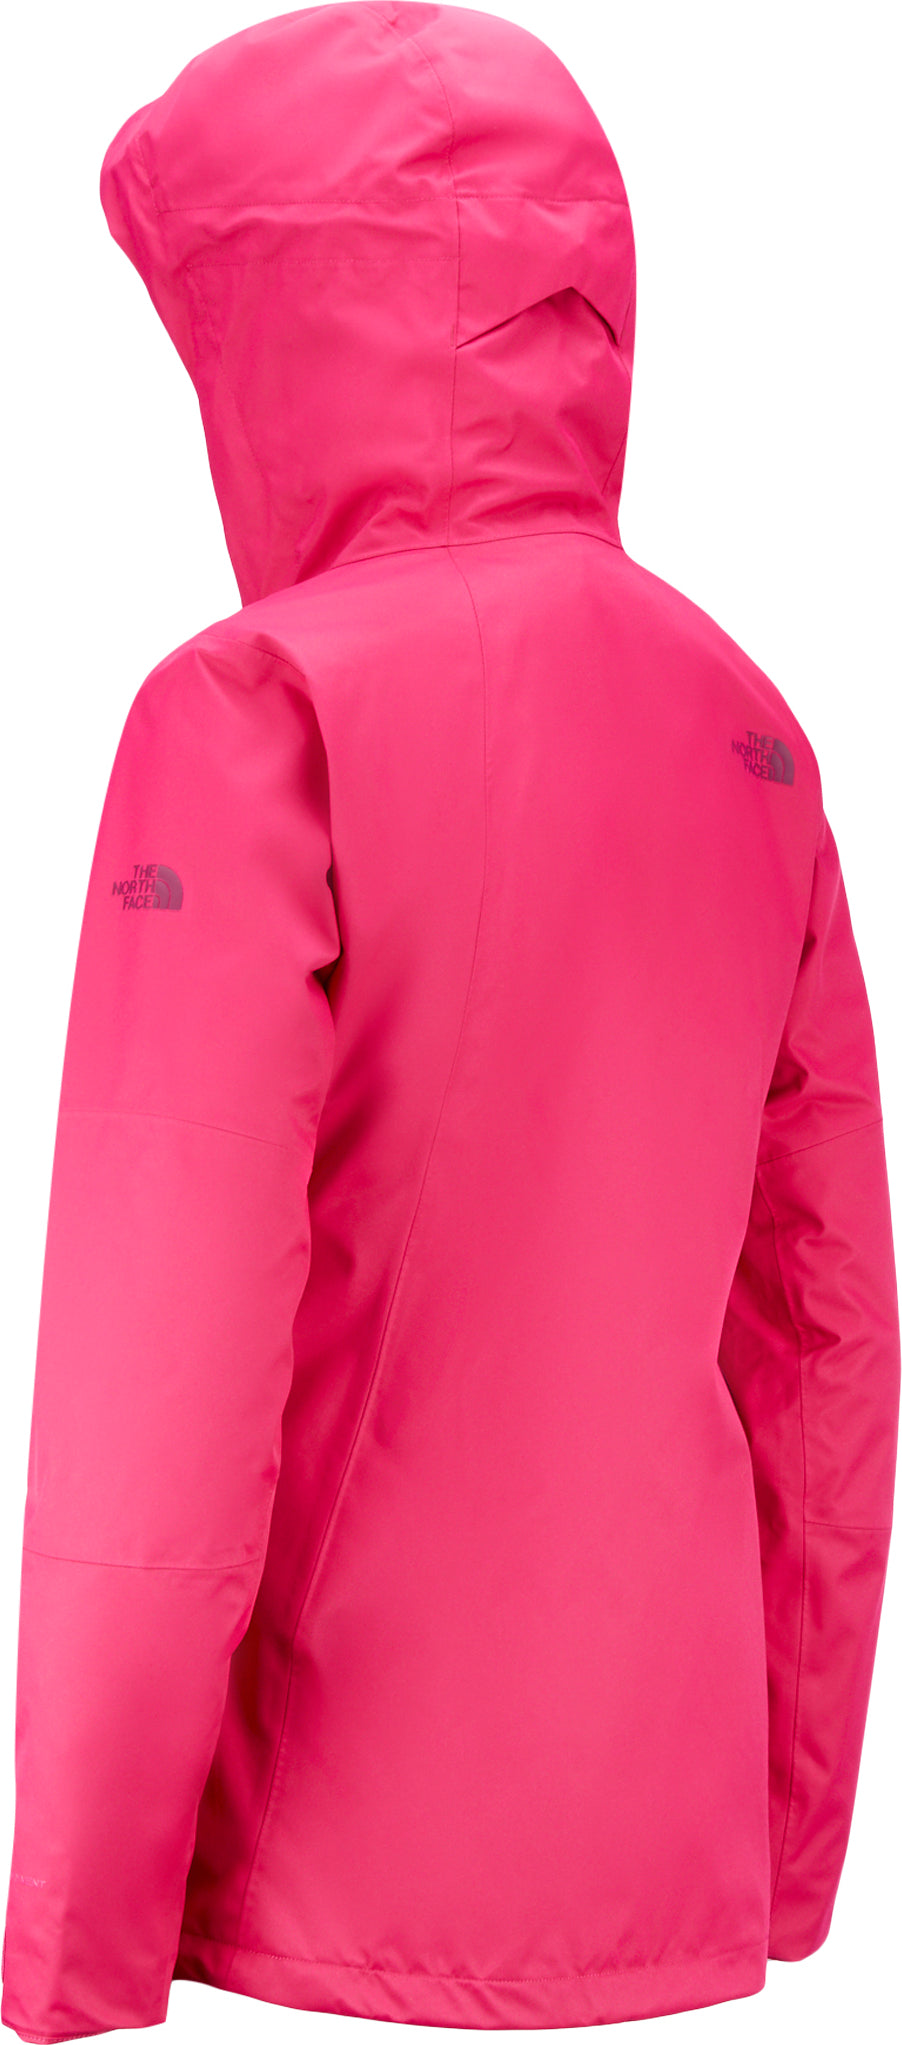 8b7afcb521 The North Face Thermoball Snow Triclimate Jacket - Women's | The ...